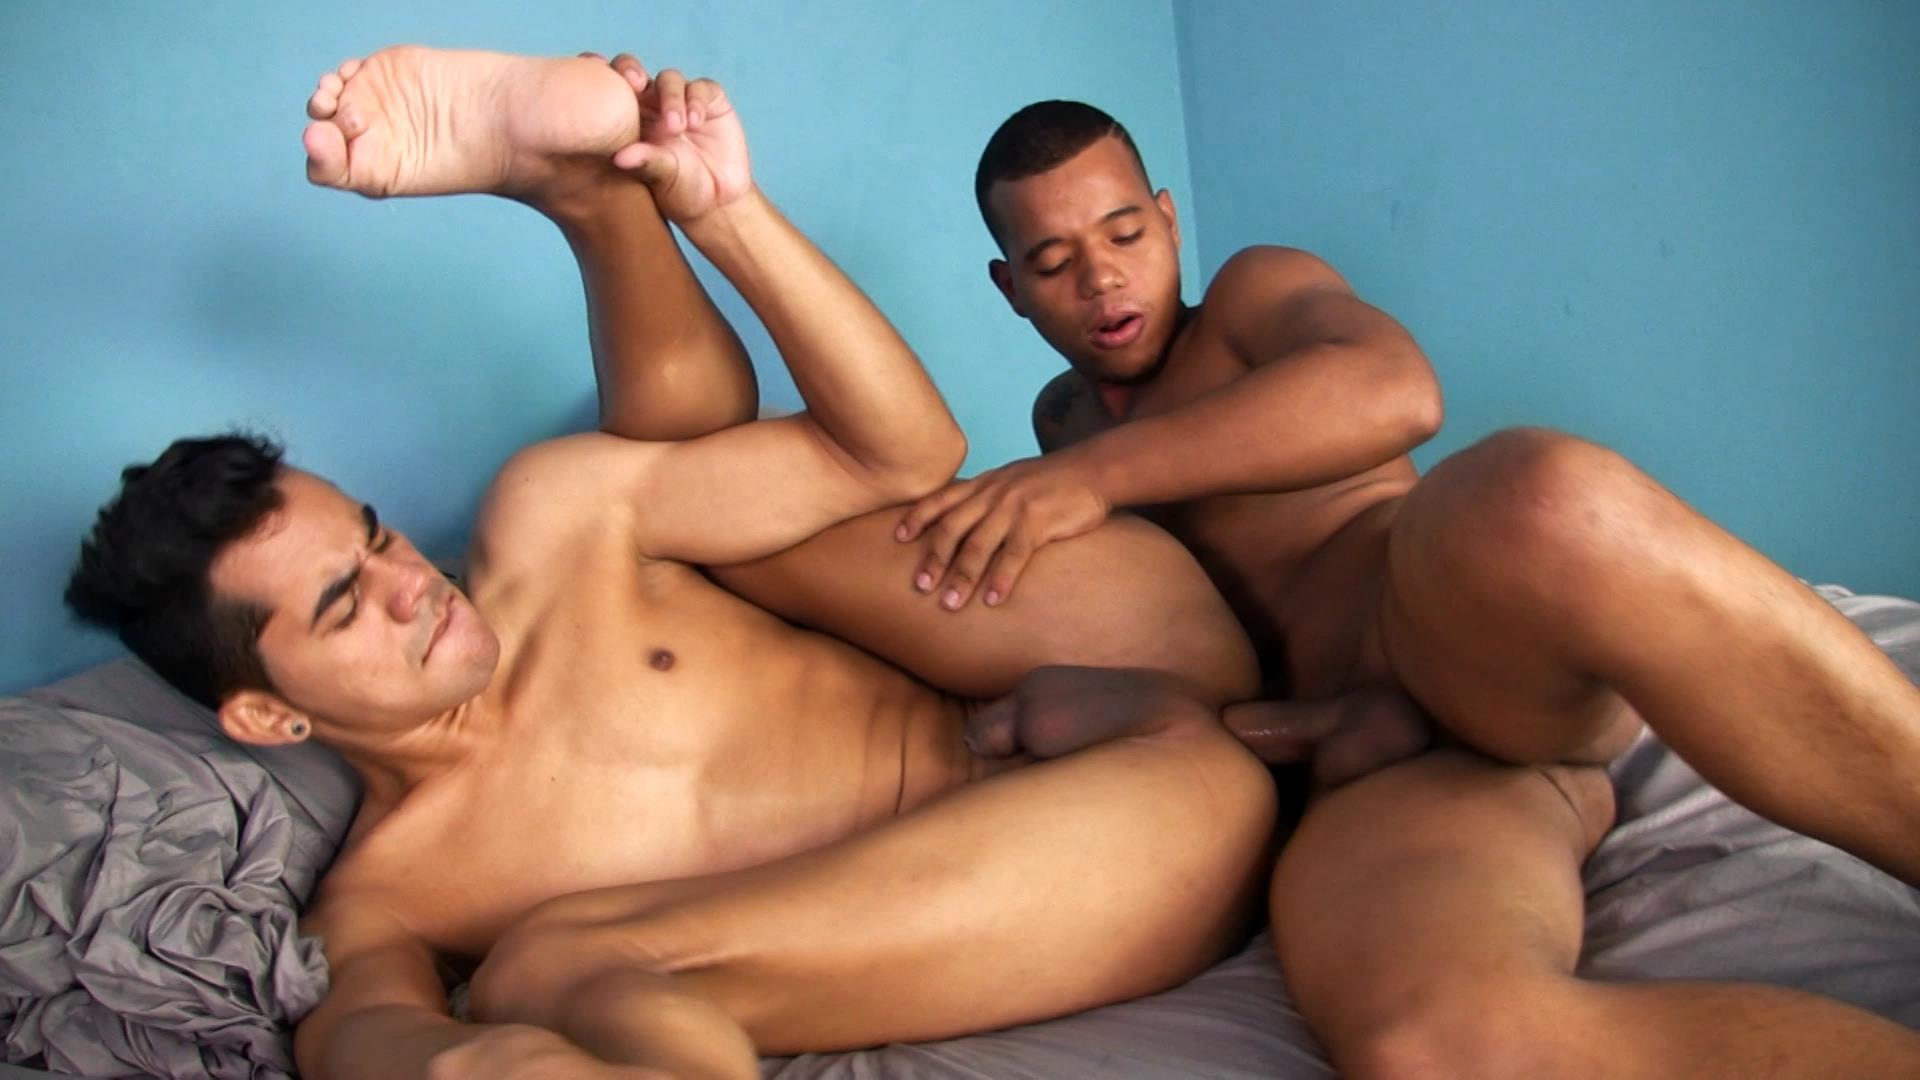 iO Macho Latino Twinks Bareback Big Uncut Dicks Amateur Gay Porn 13 Aggressive Latino Twink Bareback Breeds His Latin Buddy With His Big Uncut Cock